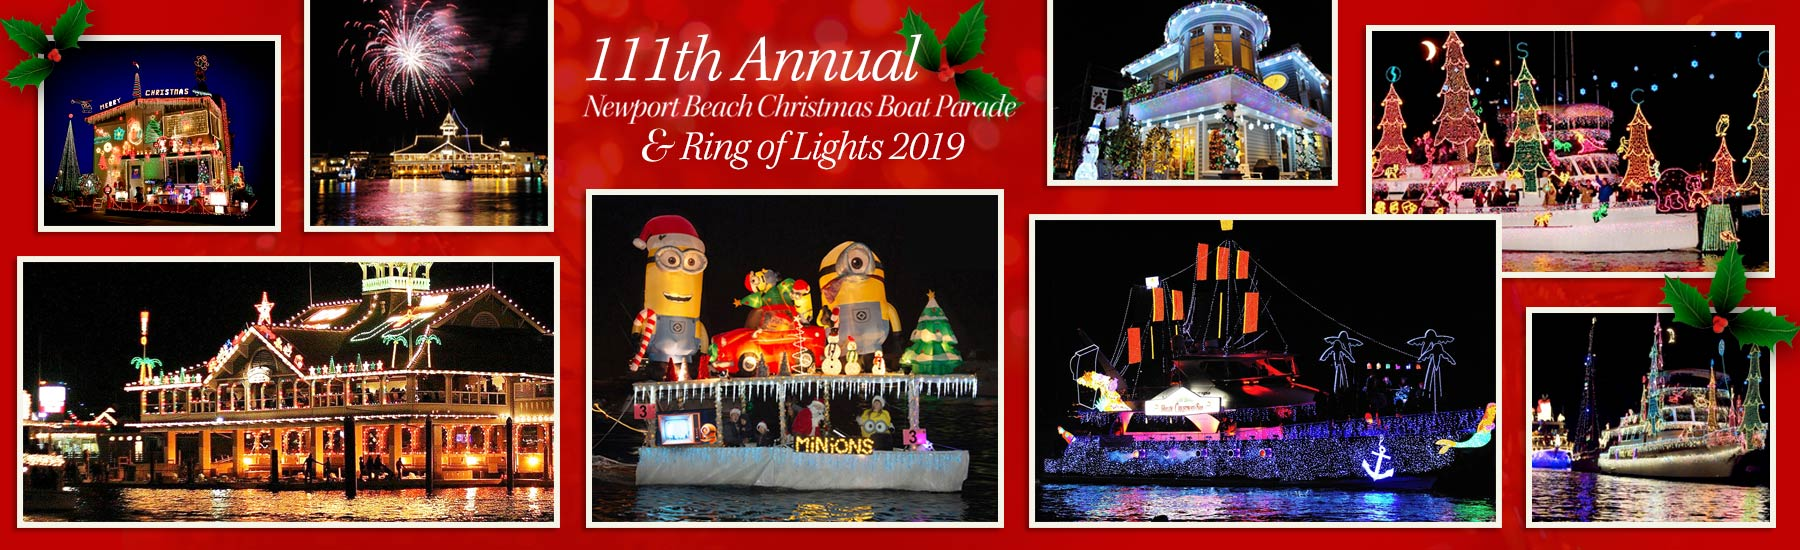 Christmas Parades Near Me 2019.2019 Newport Beach Boat Parade Website Company Christmas